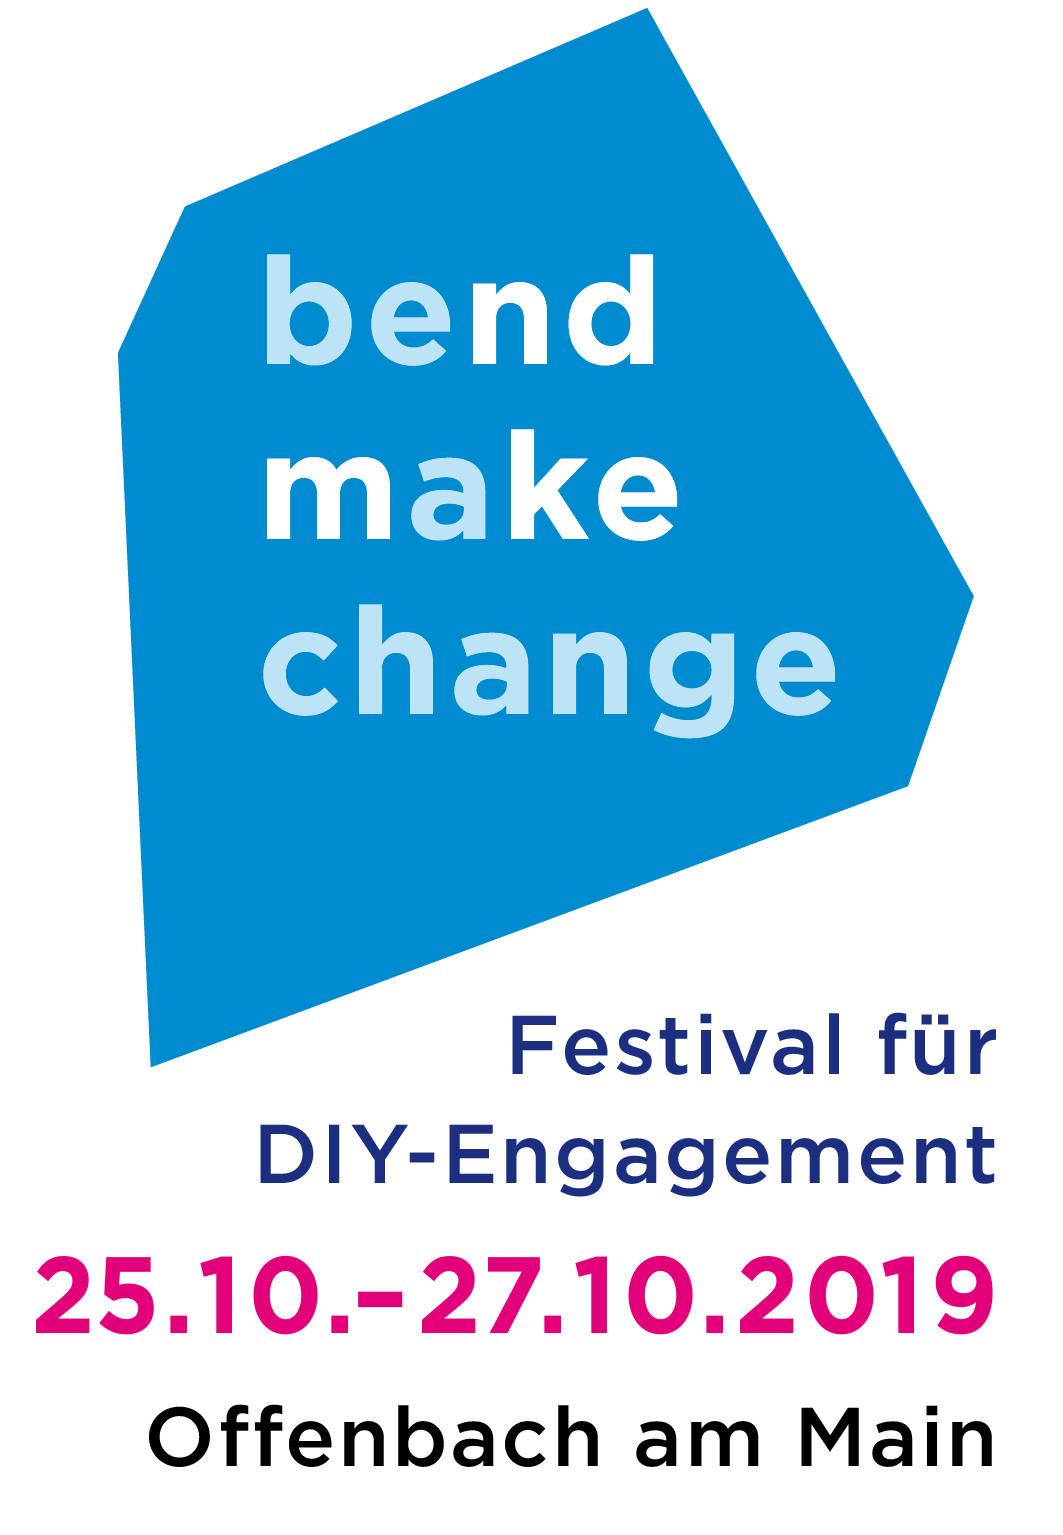 Logo Bend Make Change 2019: Politics of Blockchain, 25. - 27. Oktober 2019 in Offenbach